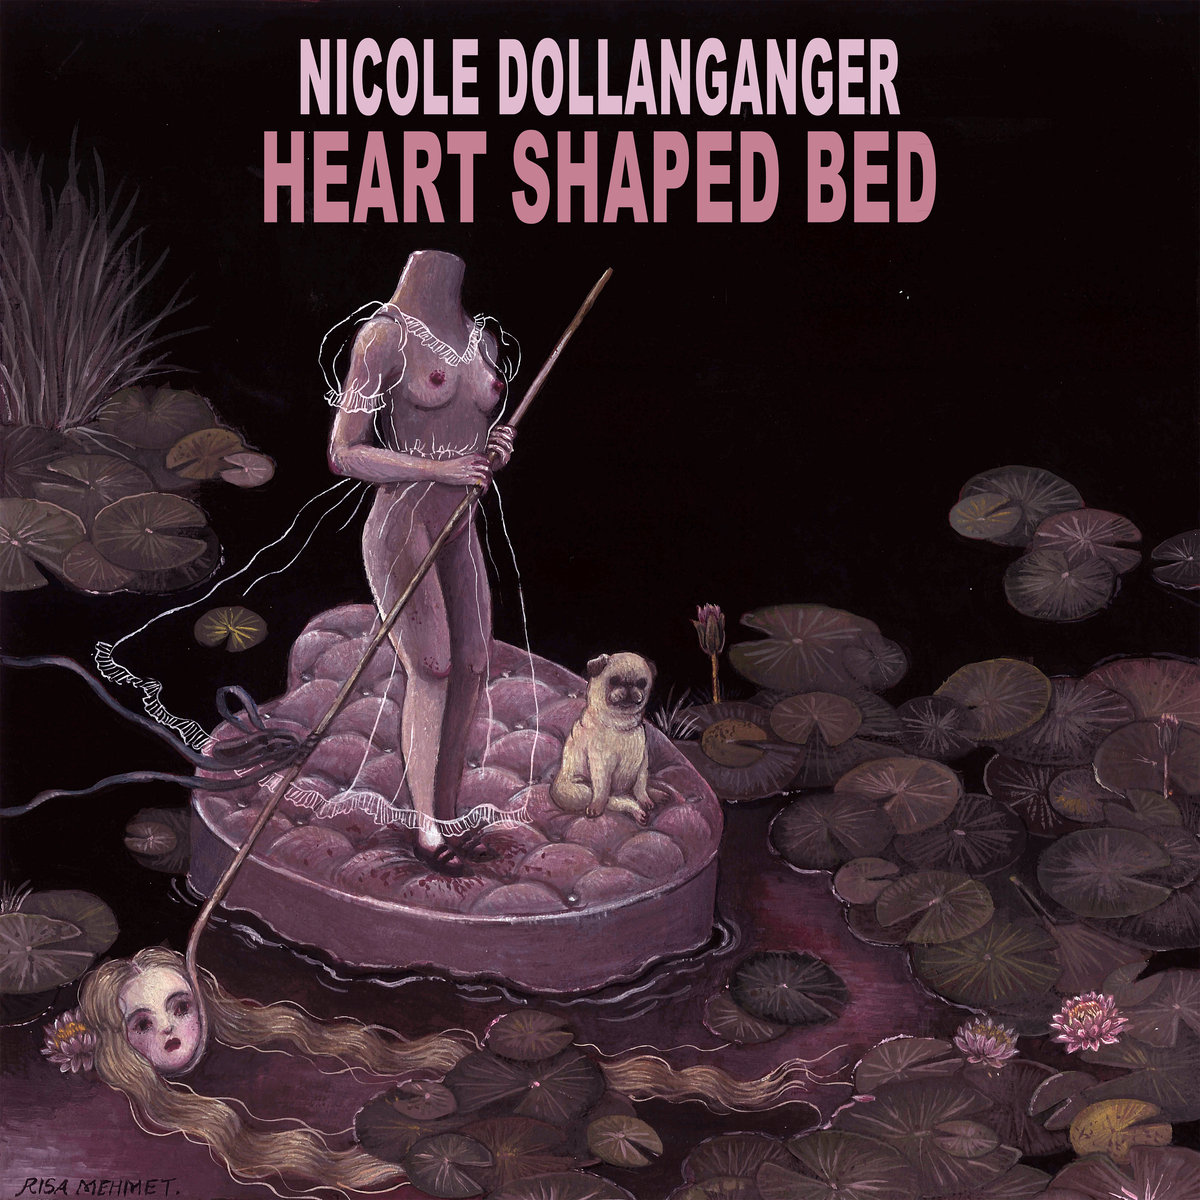 Nicole Dollanganger - Heart Shaped Bed